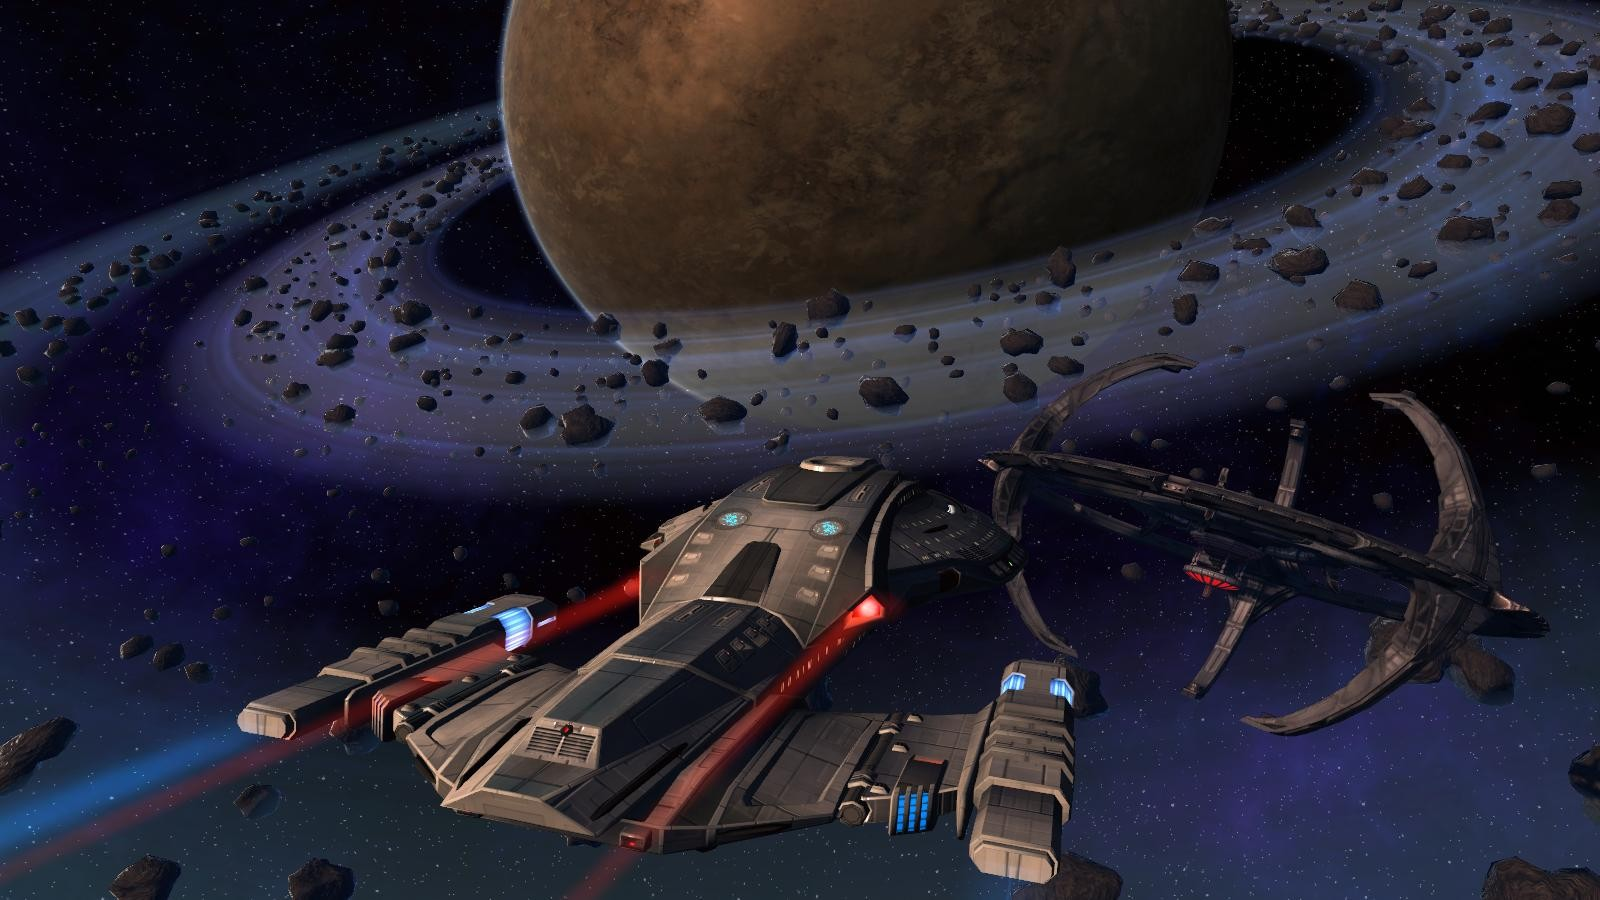 cardassian space station - photo #15